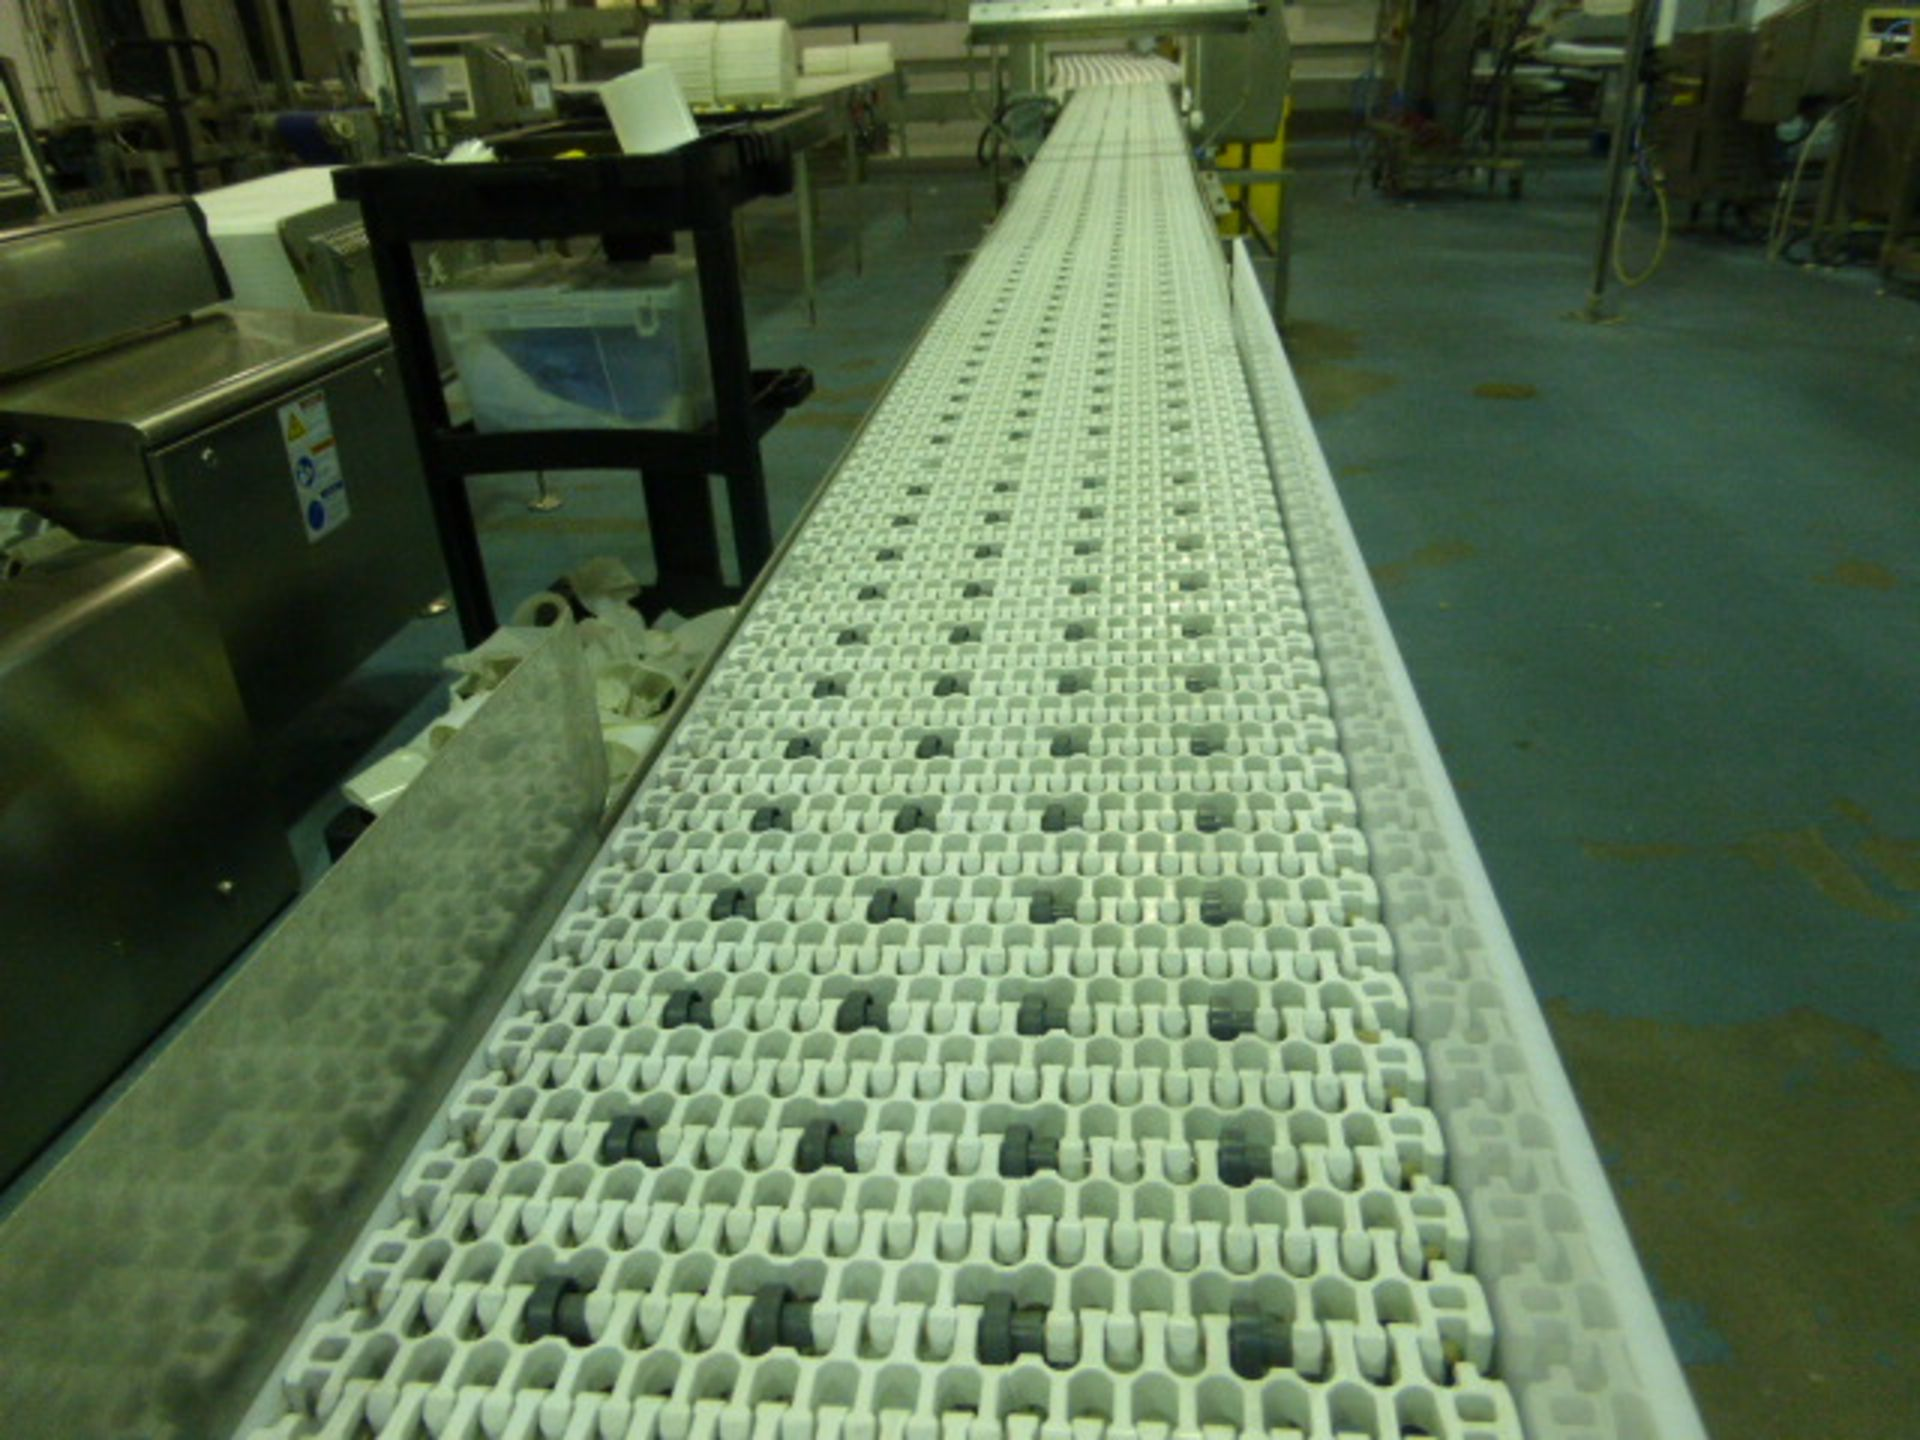 Lot 32 - s/s transfer conveyor with plastic belting, 10 in. x 24 ft.